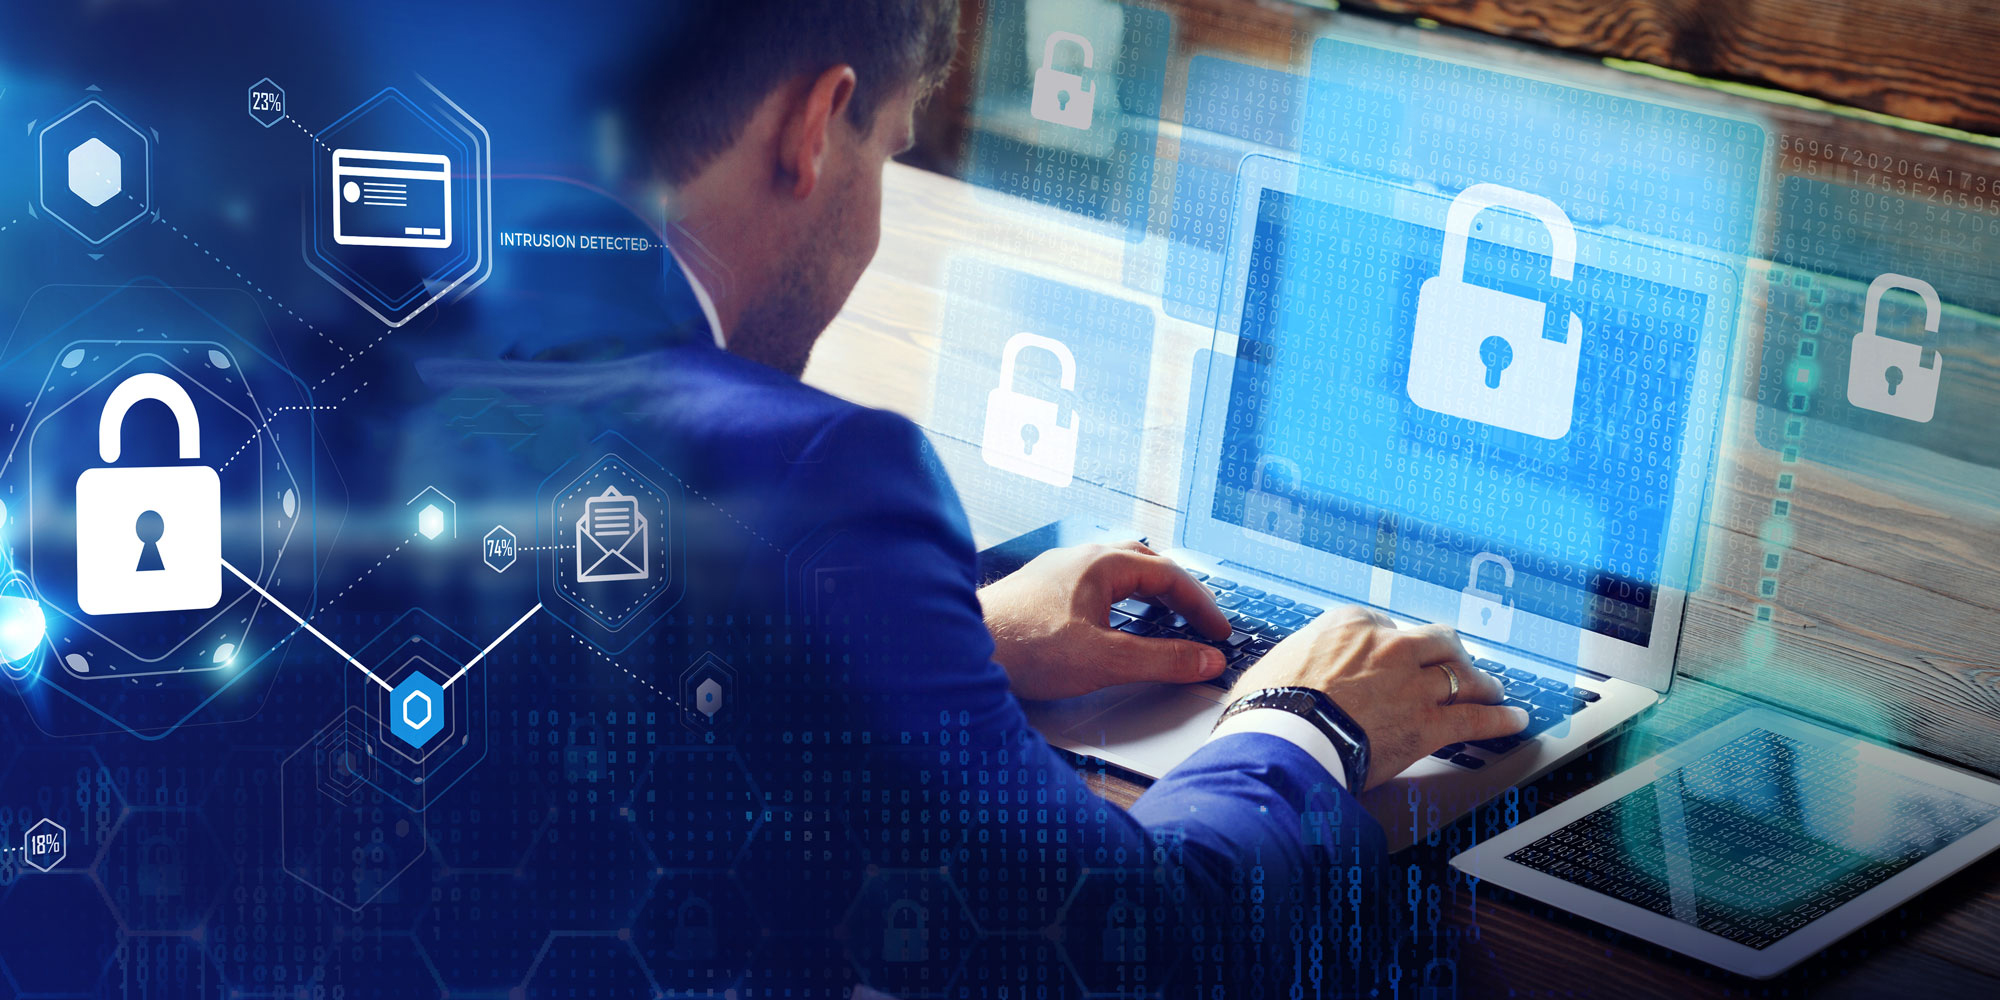 Getting Cybersmart, part 1: Top 5 cyber risks for small businesses